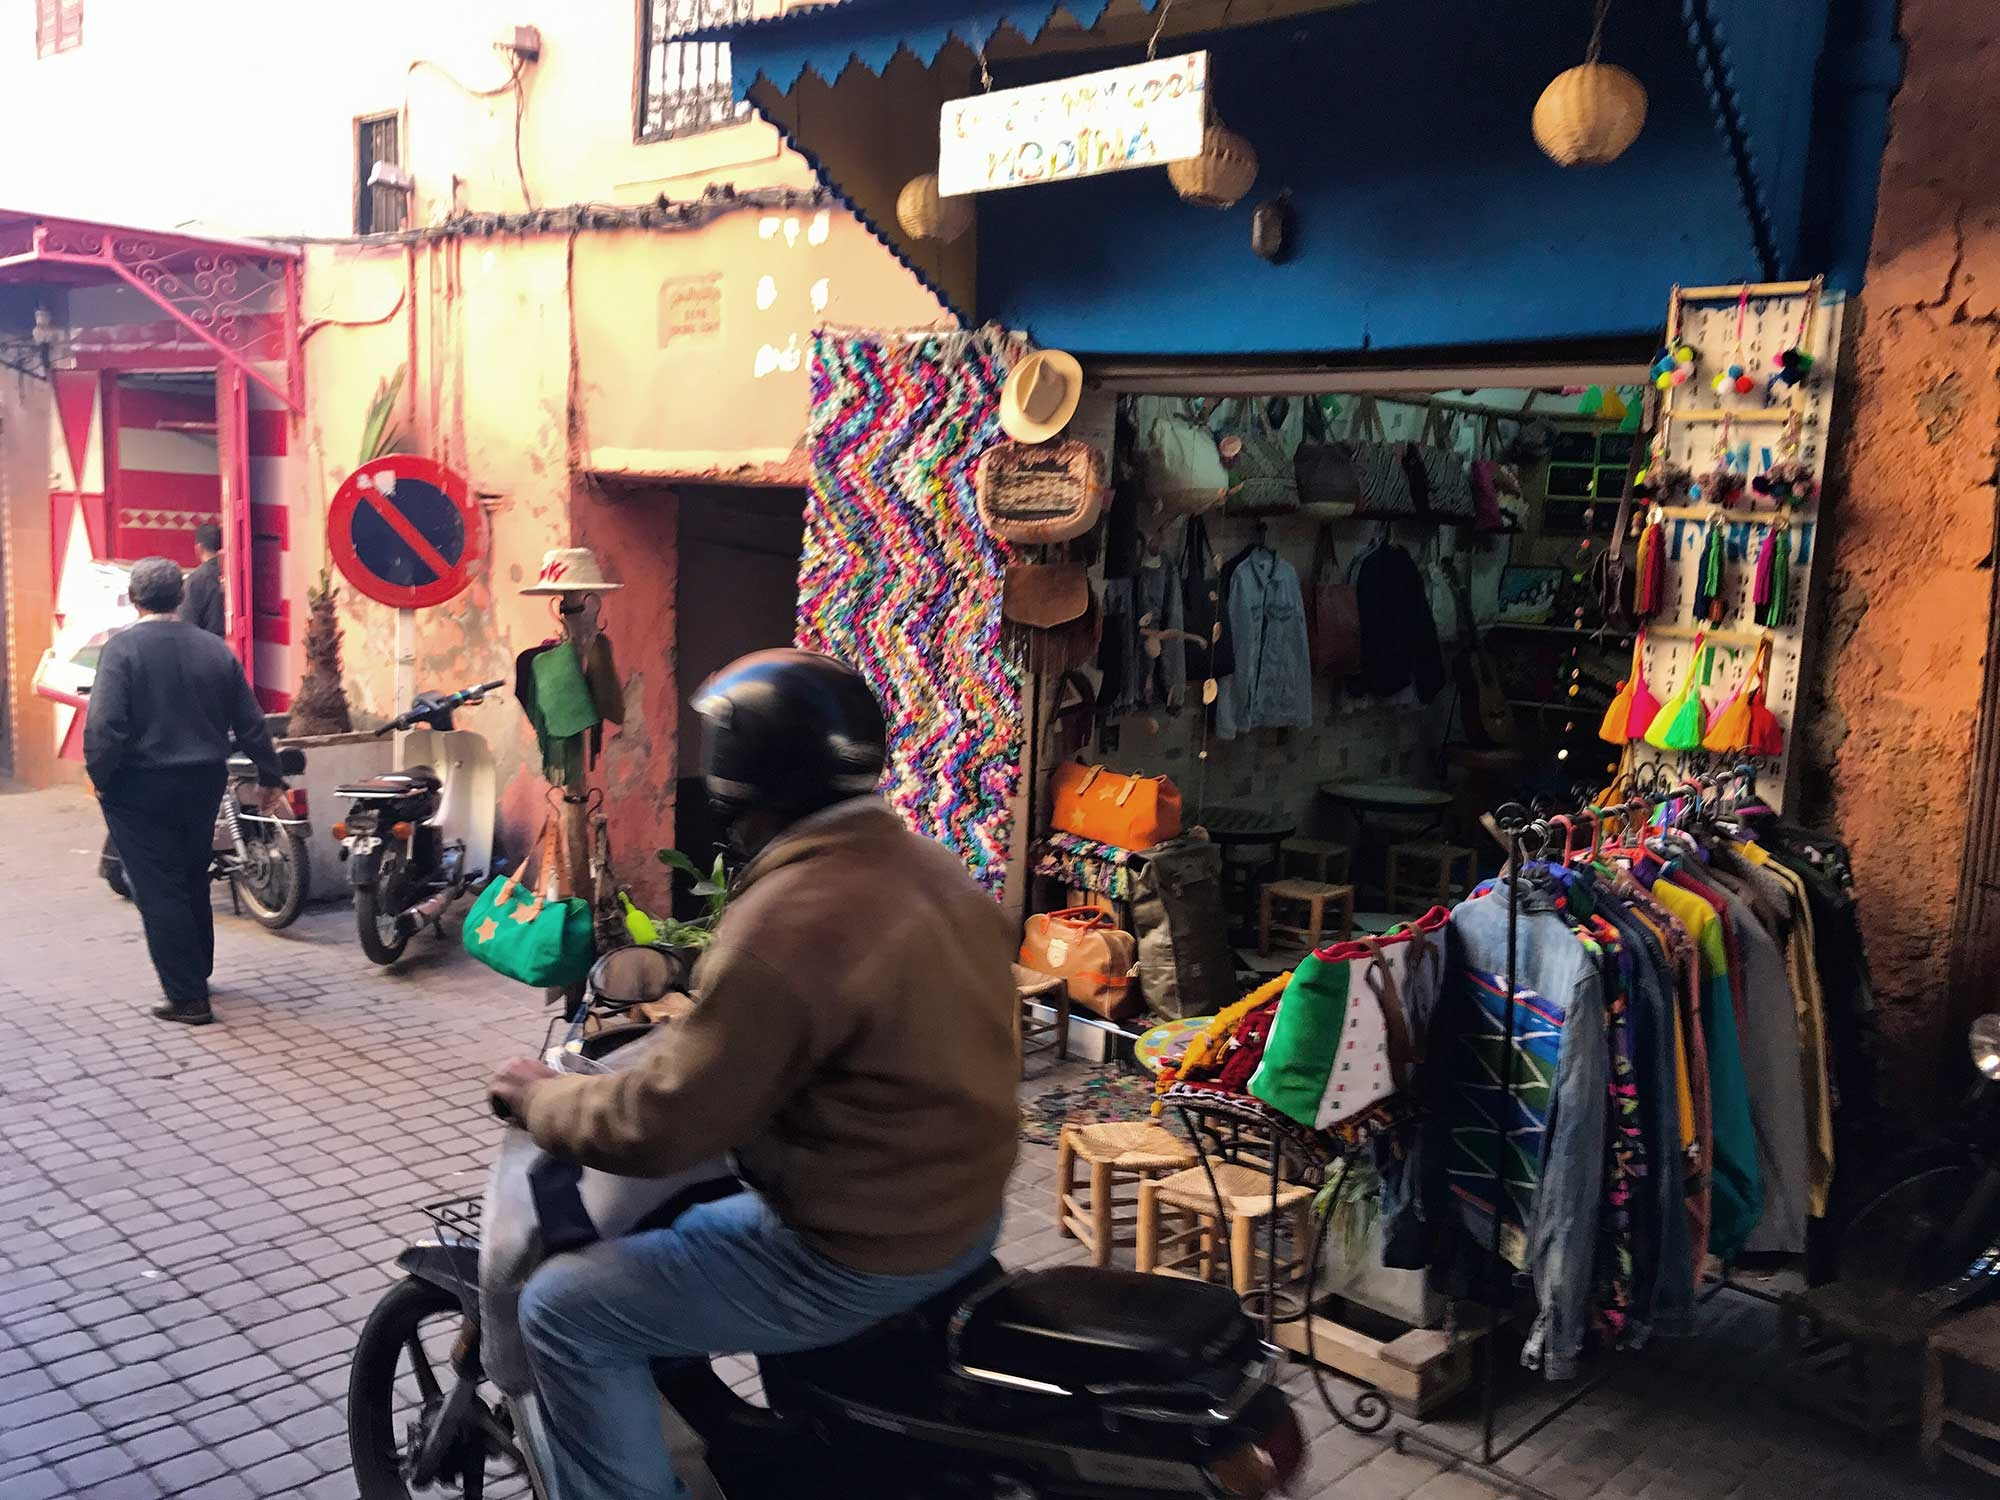 Wandering the colourful laneways of Marrakech